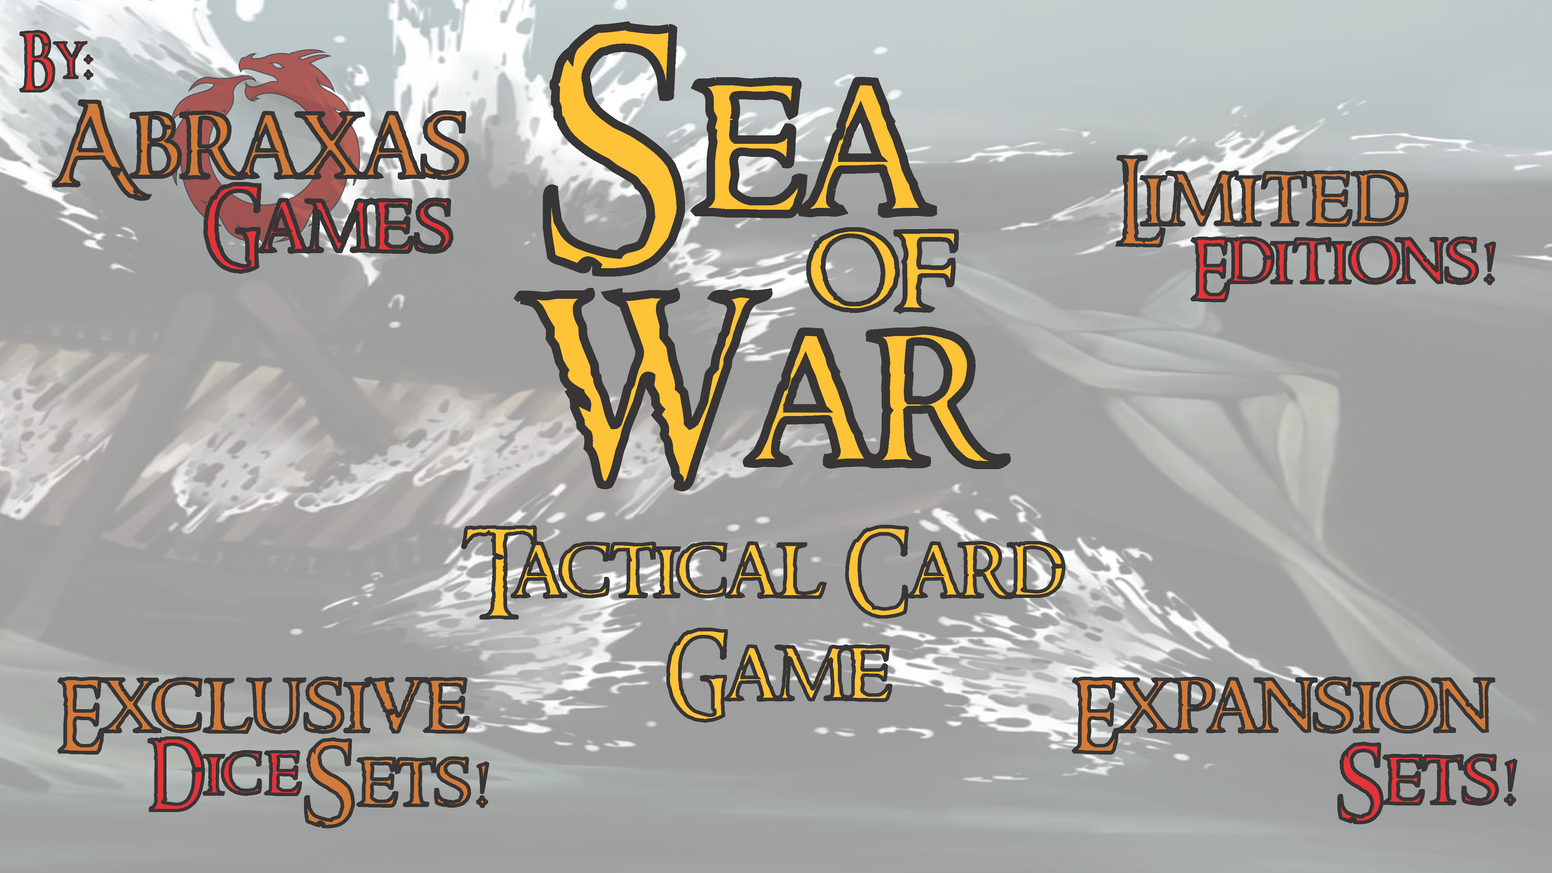 Sea of War - Tactical Card Game by Abraxas All-Seer